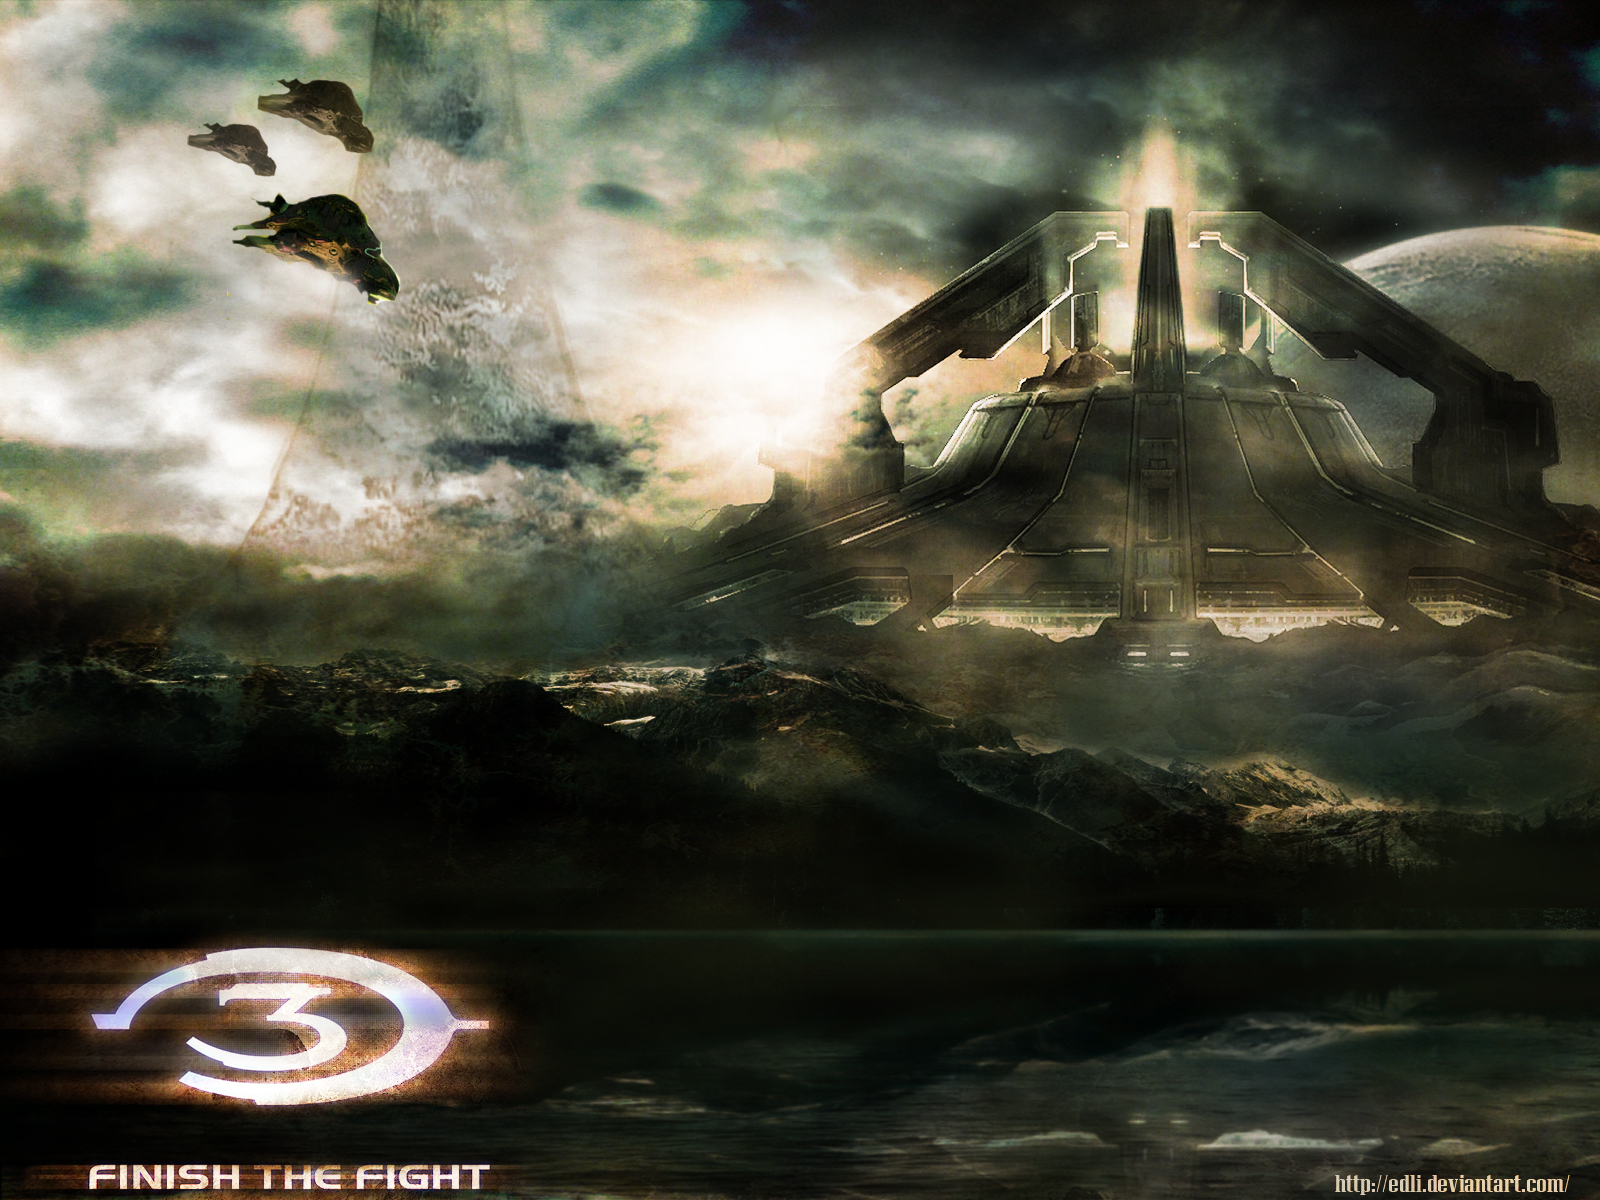 the widescreen desktop wallpapers of Halo scenes made by Halo fans 1600x1200